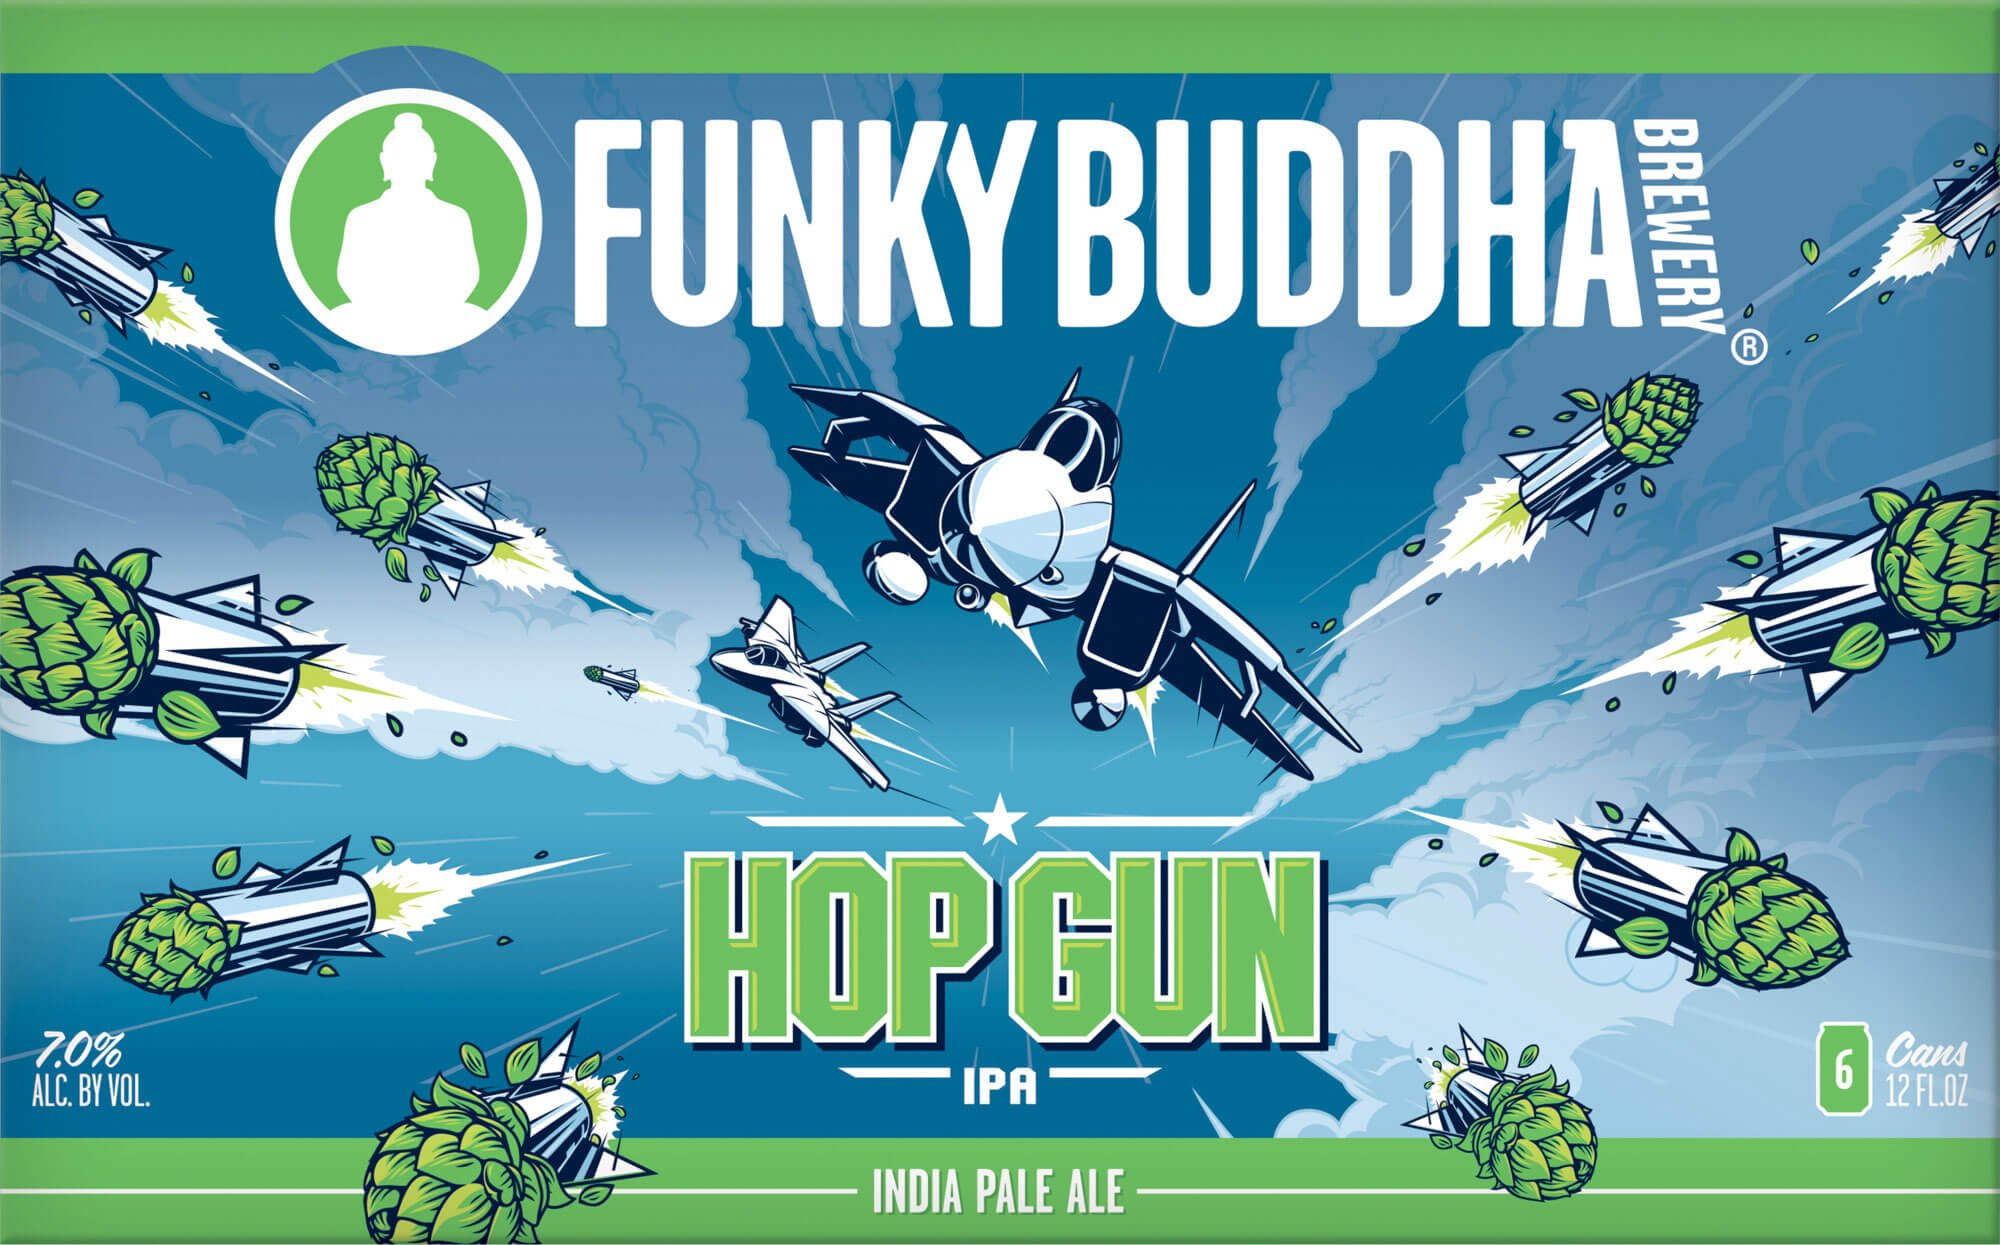 Label art for the Hop Gun IPA by Funky Buddha Brewery